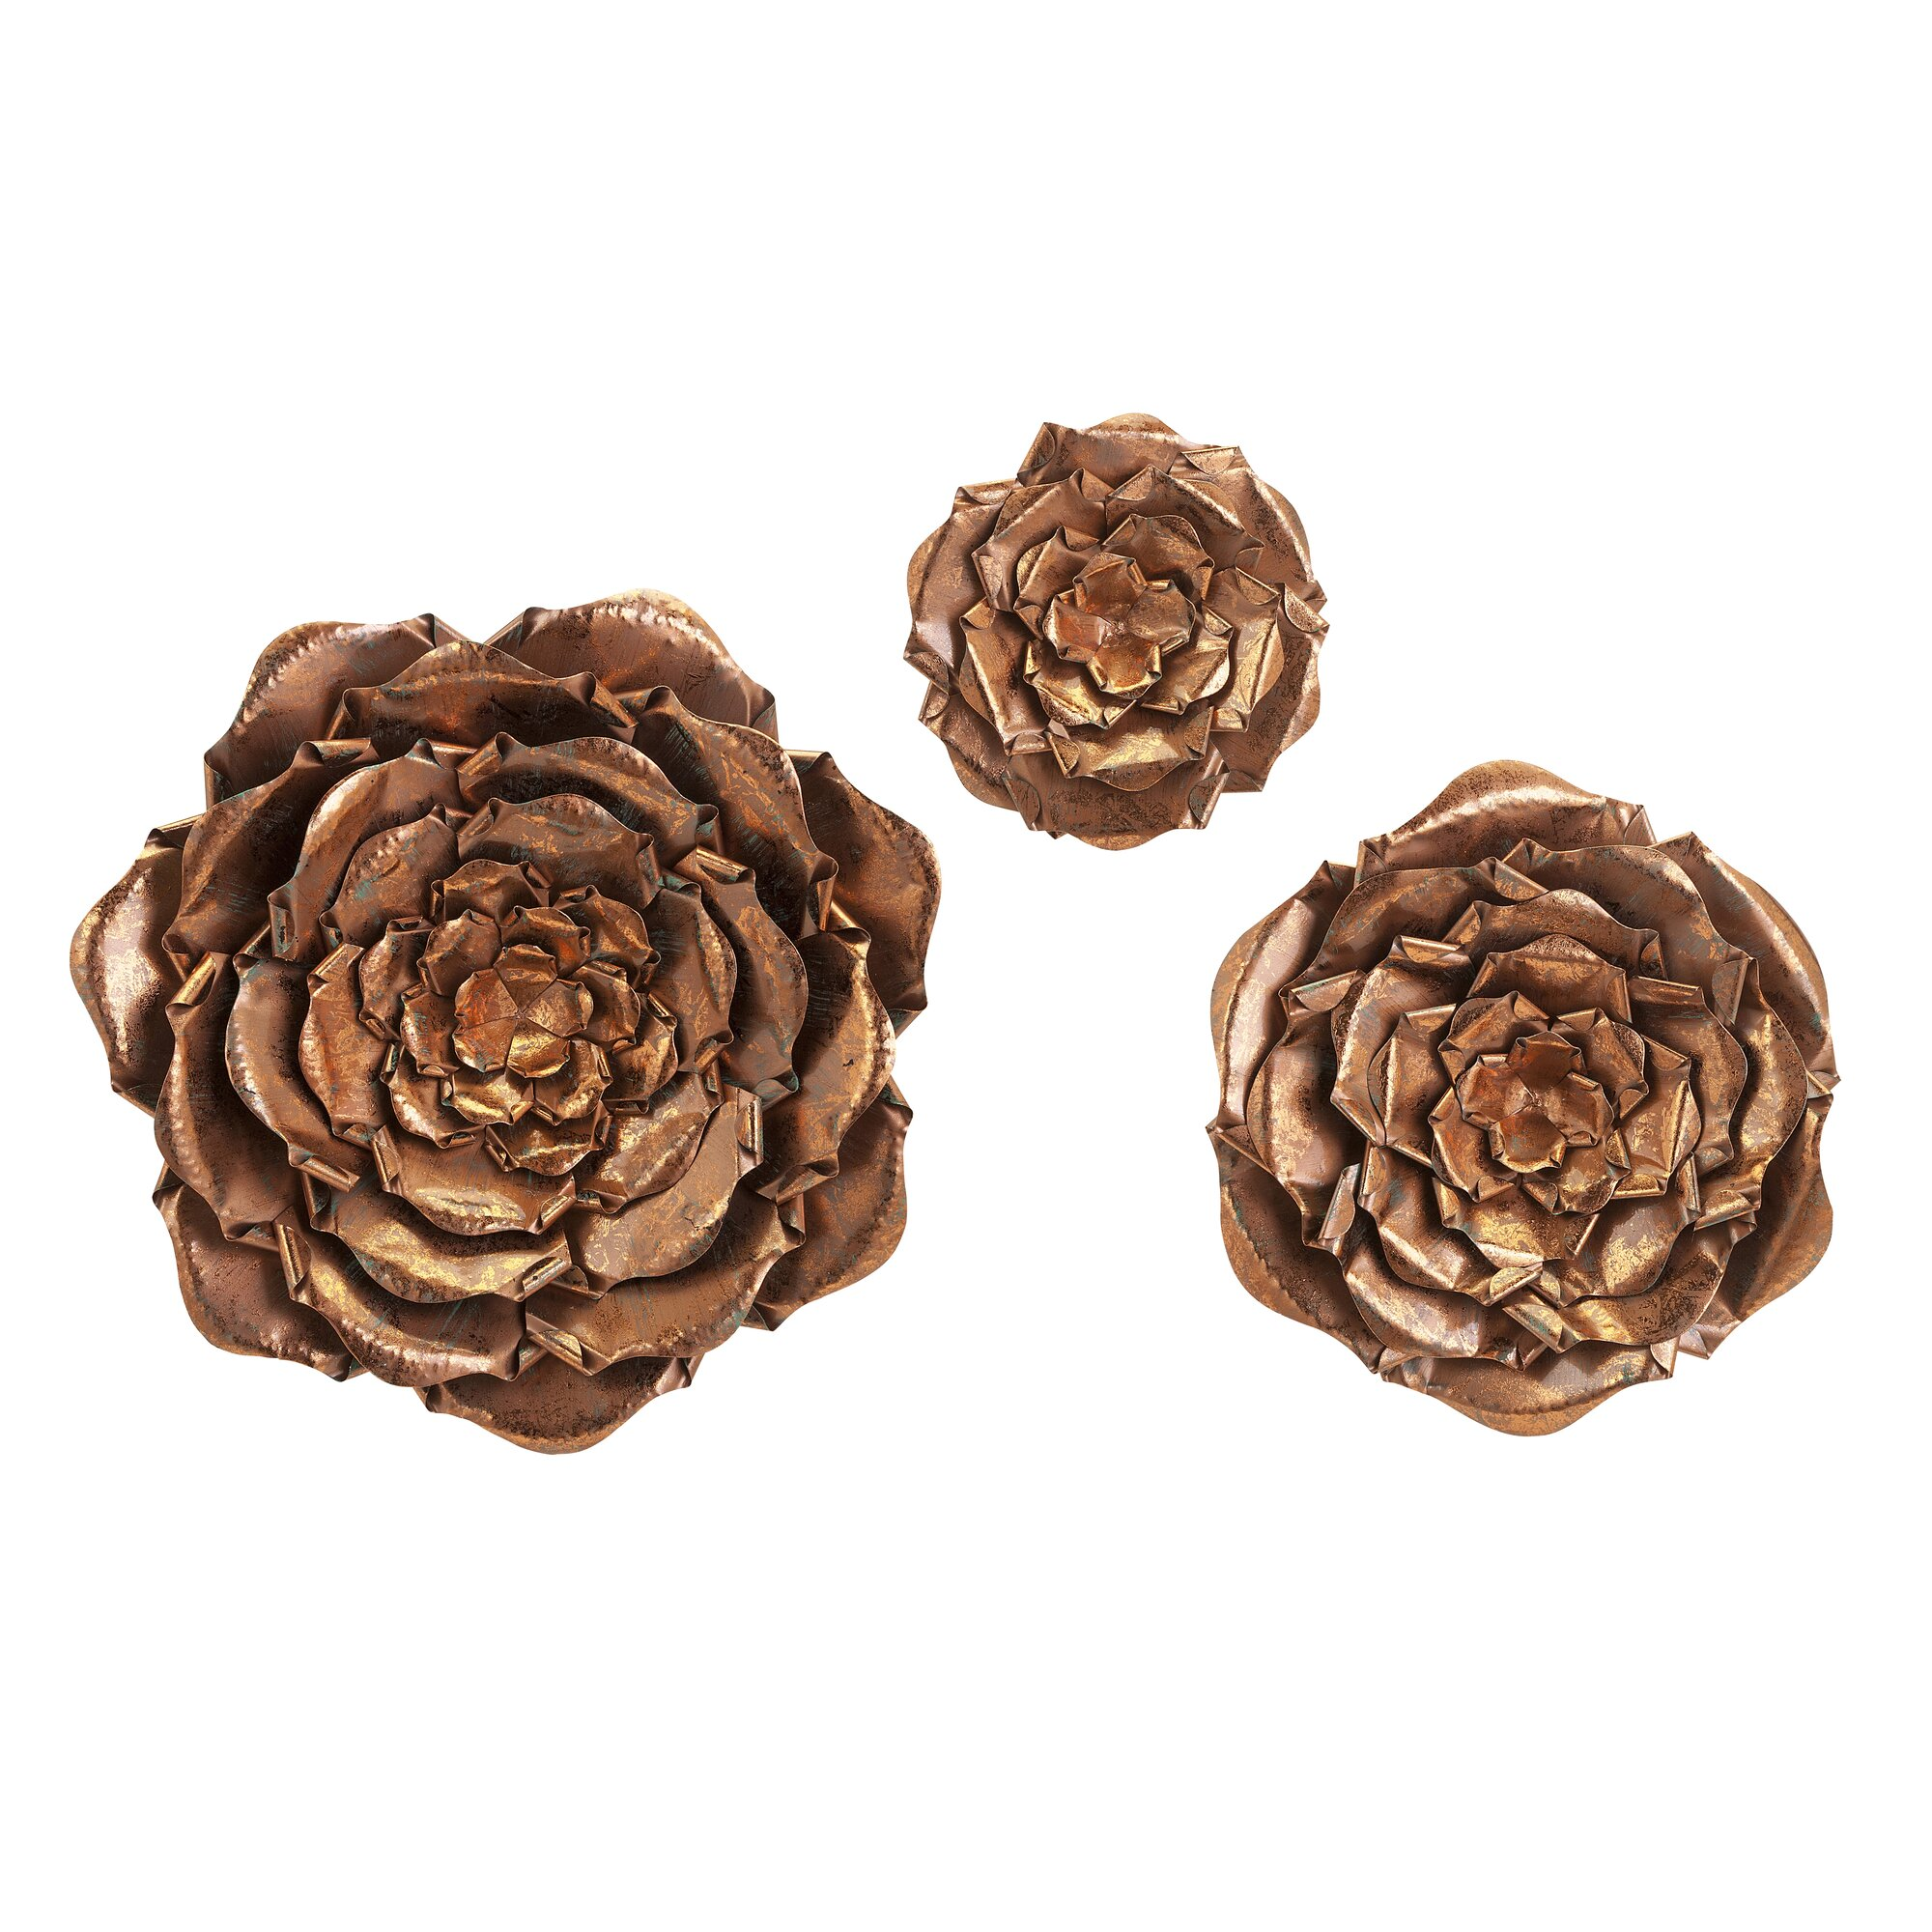 3 piece blayney metal flower wall dcor set - Metal Flower Wall Decor